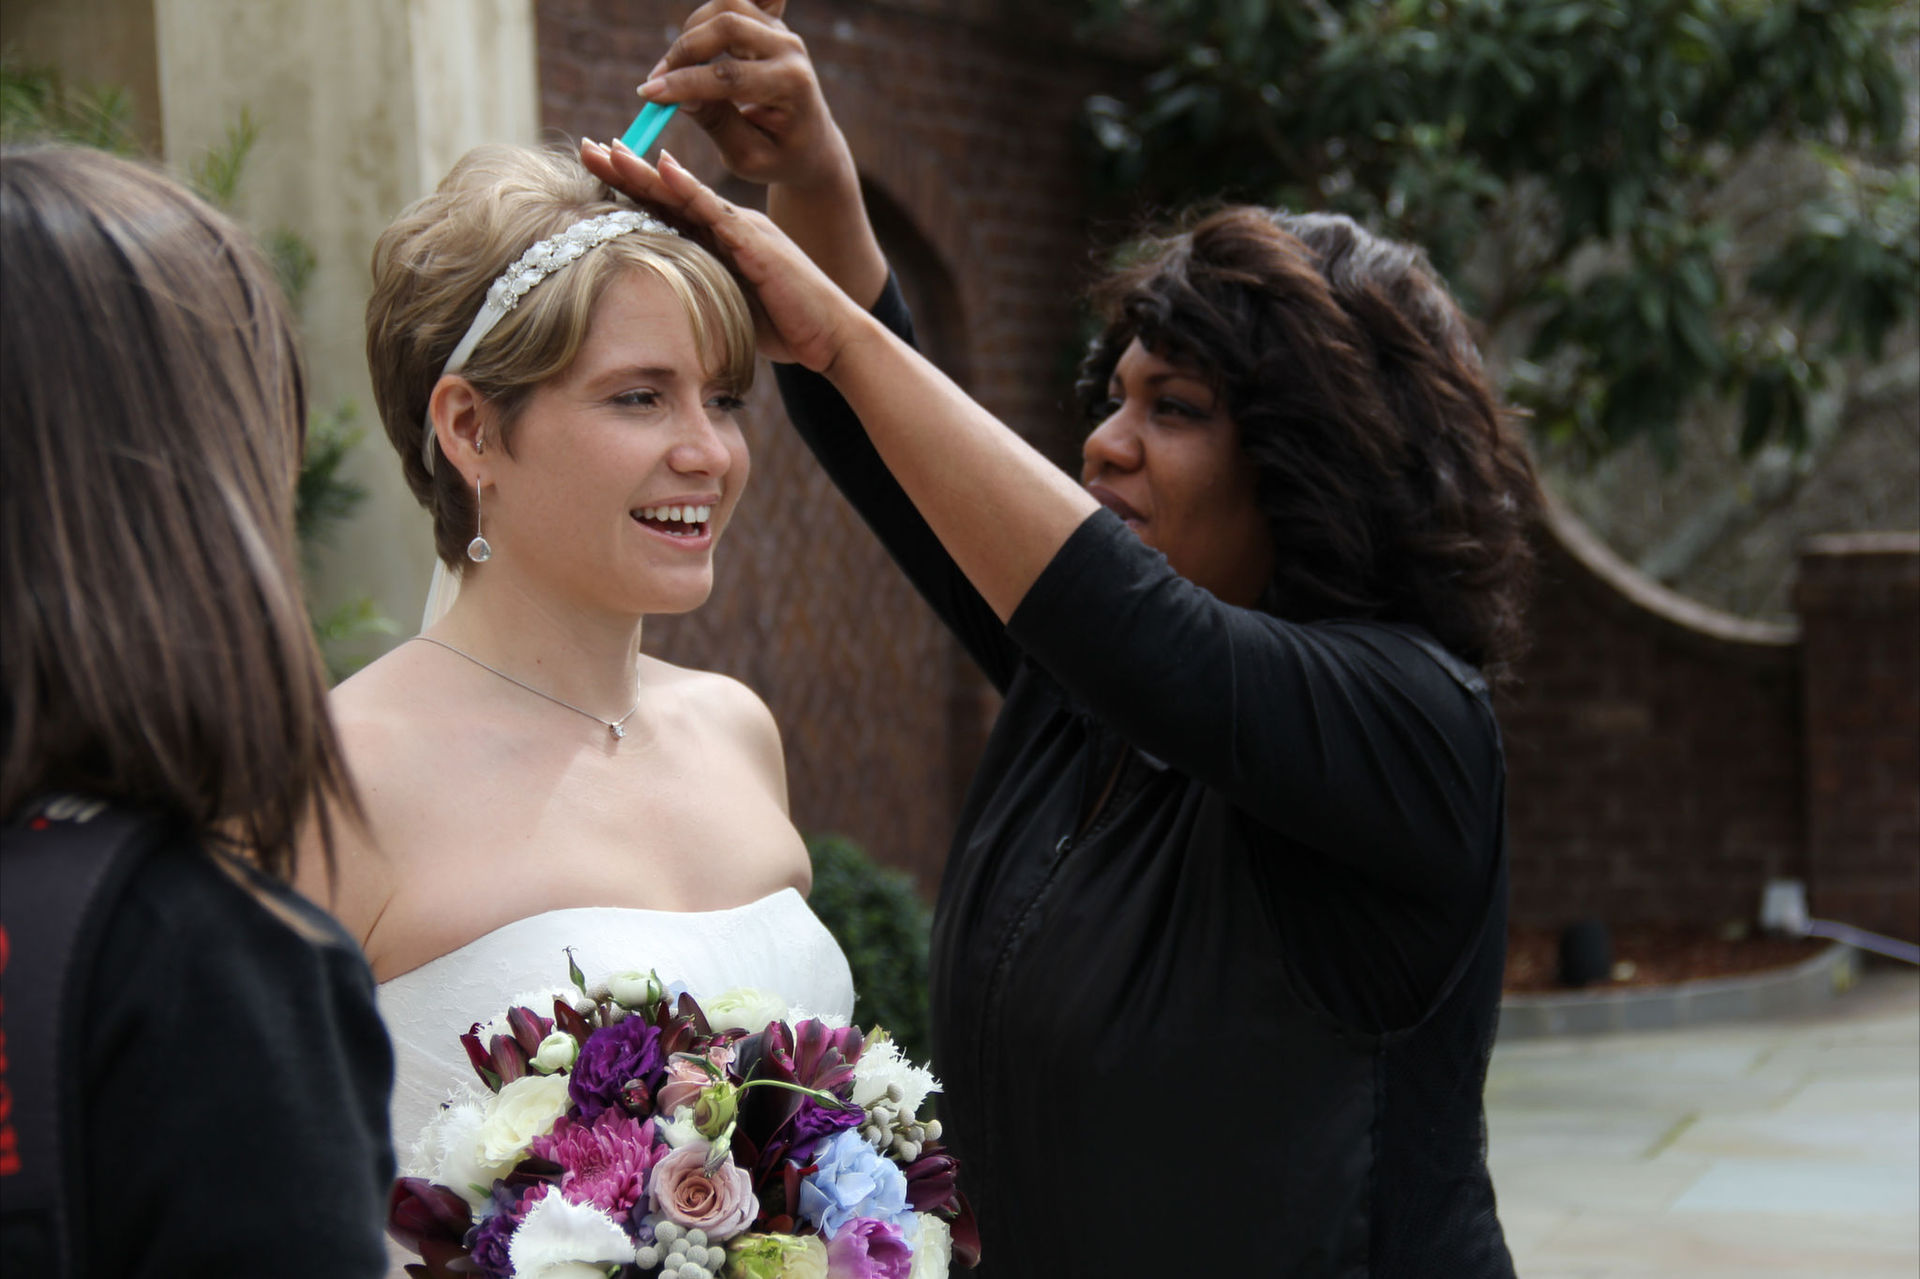 Latay Mays Styling Bride's Hair